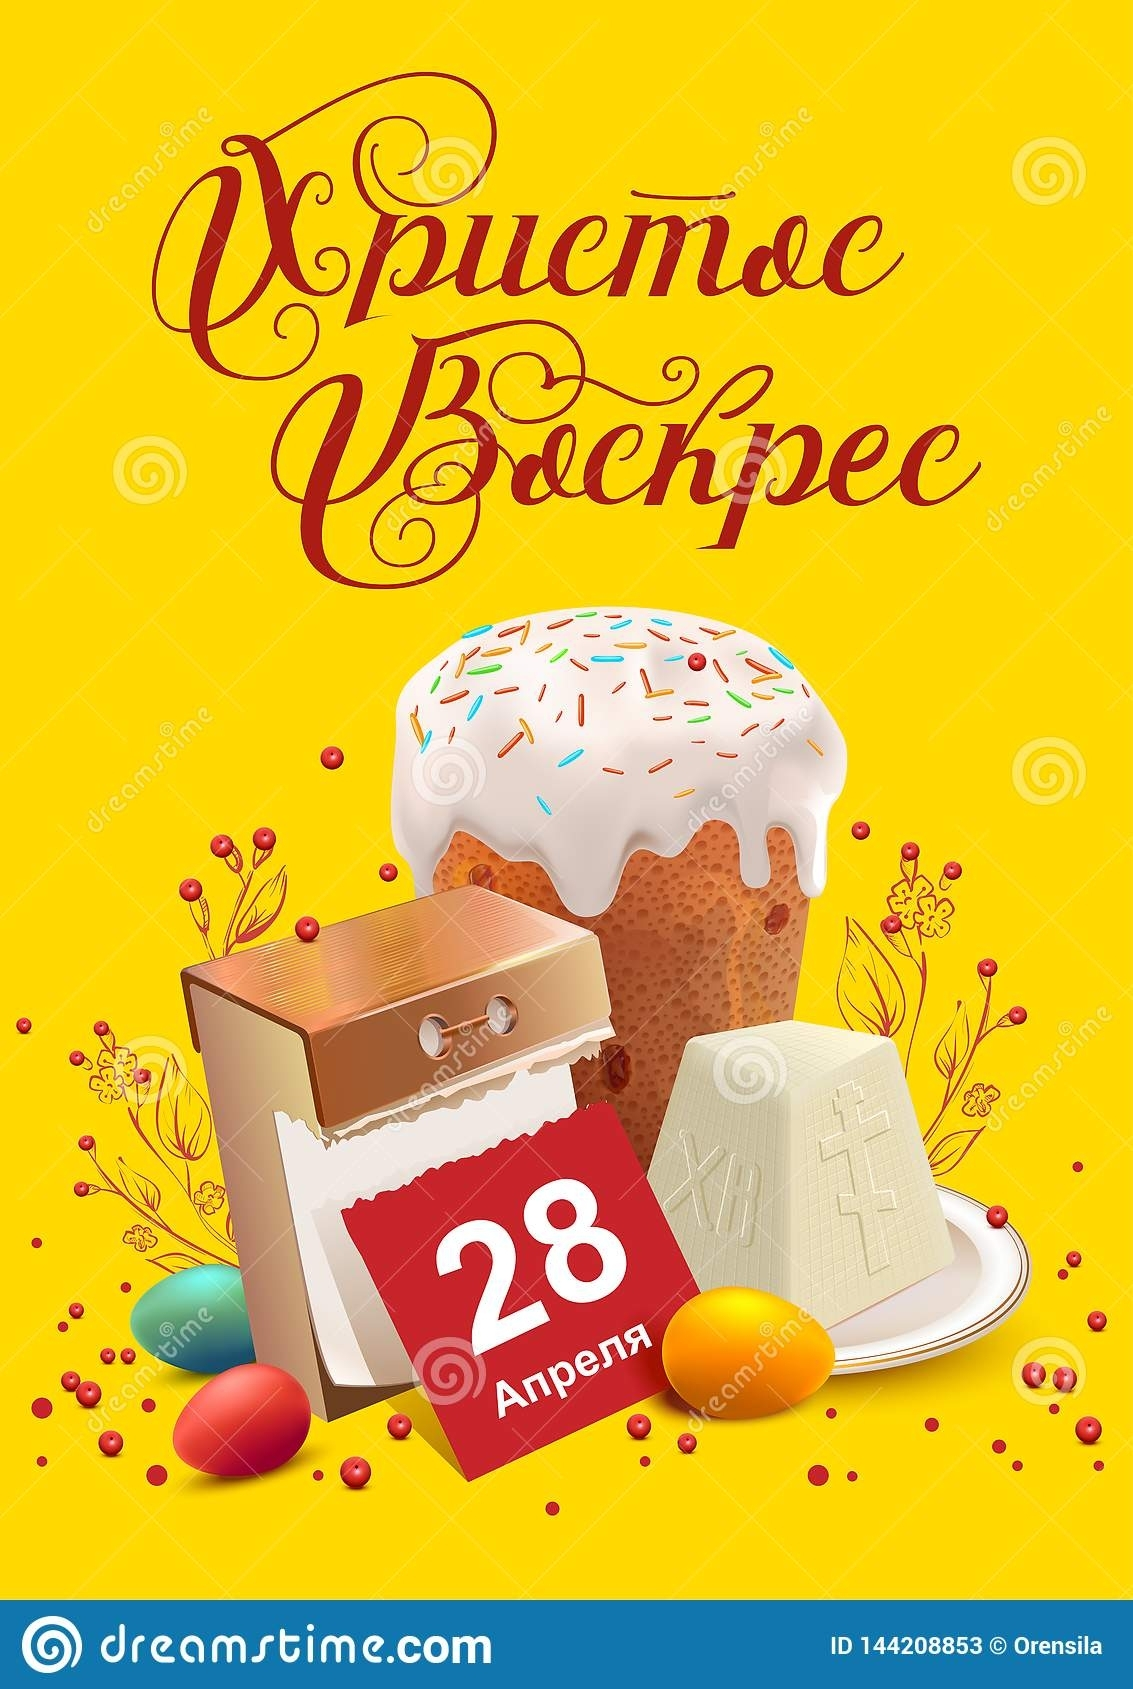 April 28, 2019 Russian Orthodox Easter Greeting Card